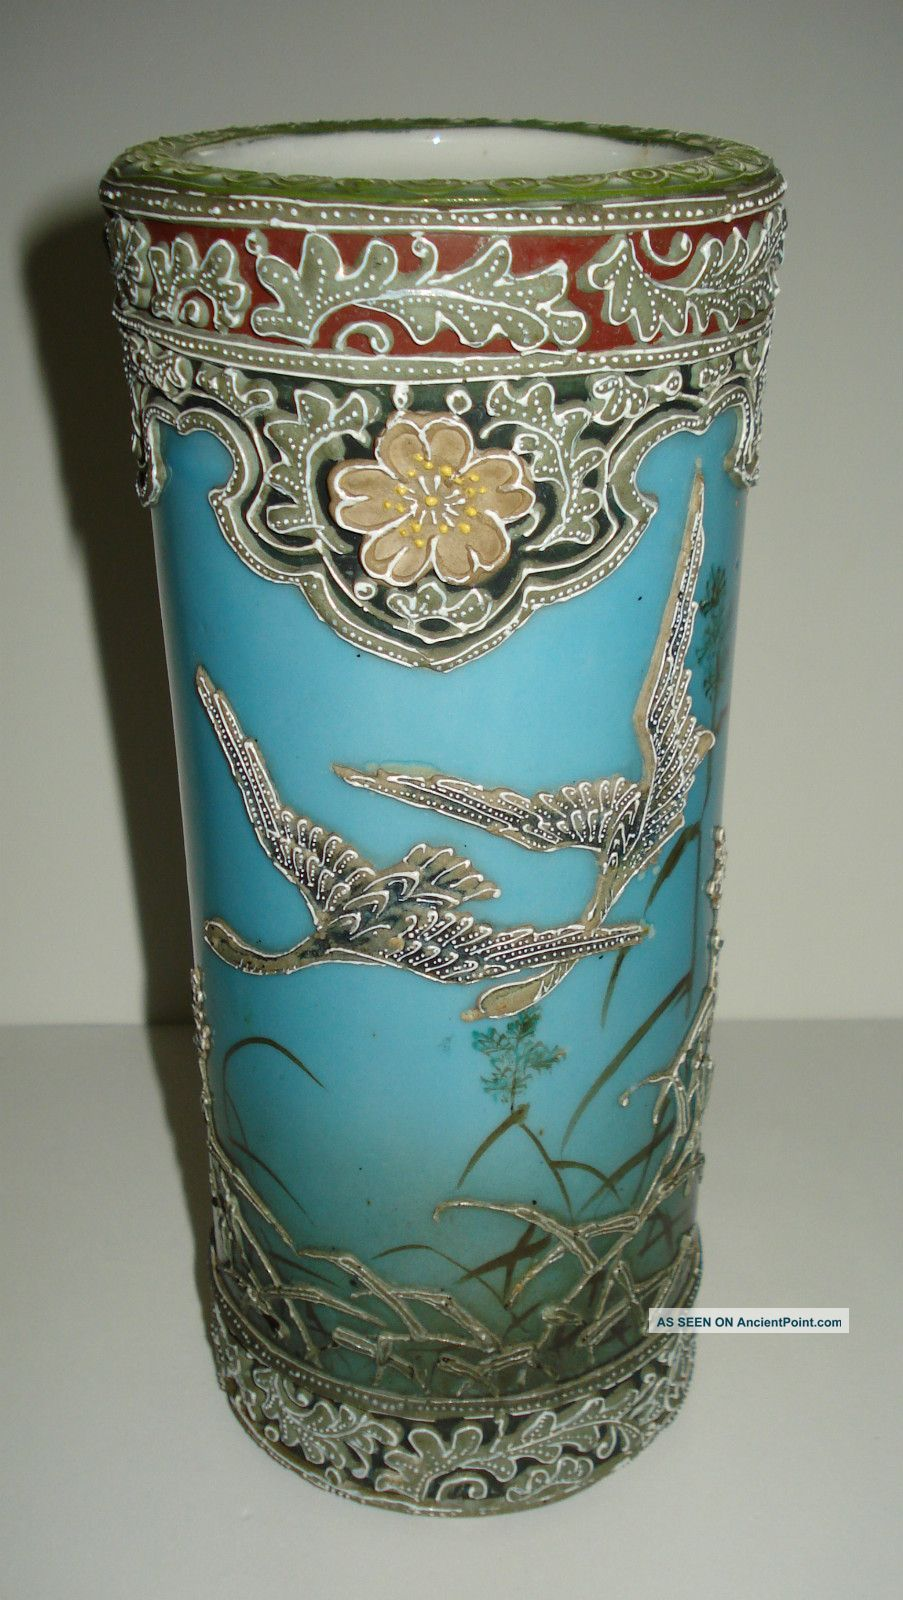 Japanese nippon vases antique nippon hand painted japanese japanese nippon vases antique nippon hand painted japanese moriage vase flying cranes reviewsmspy